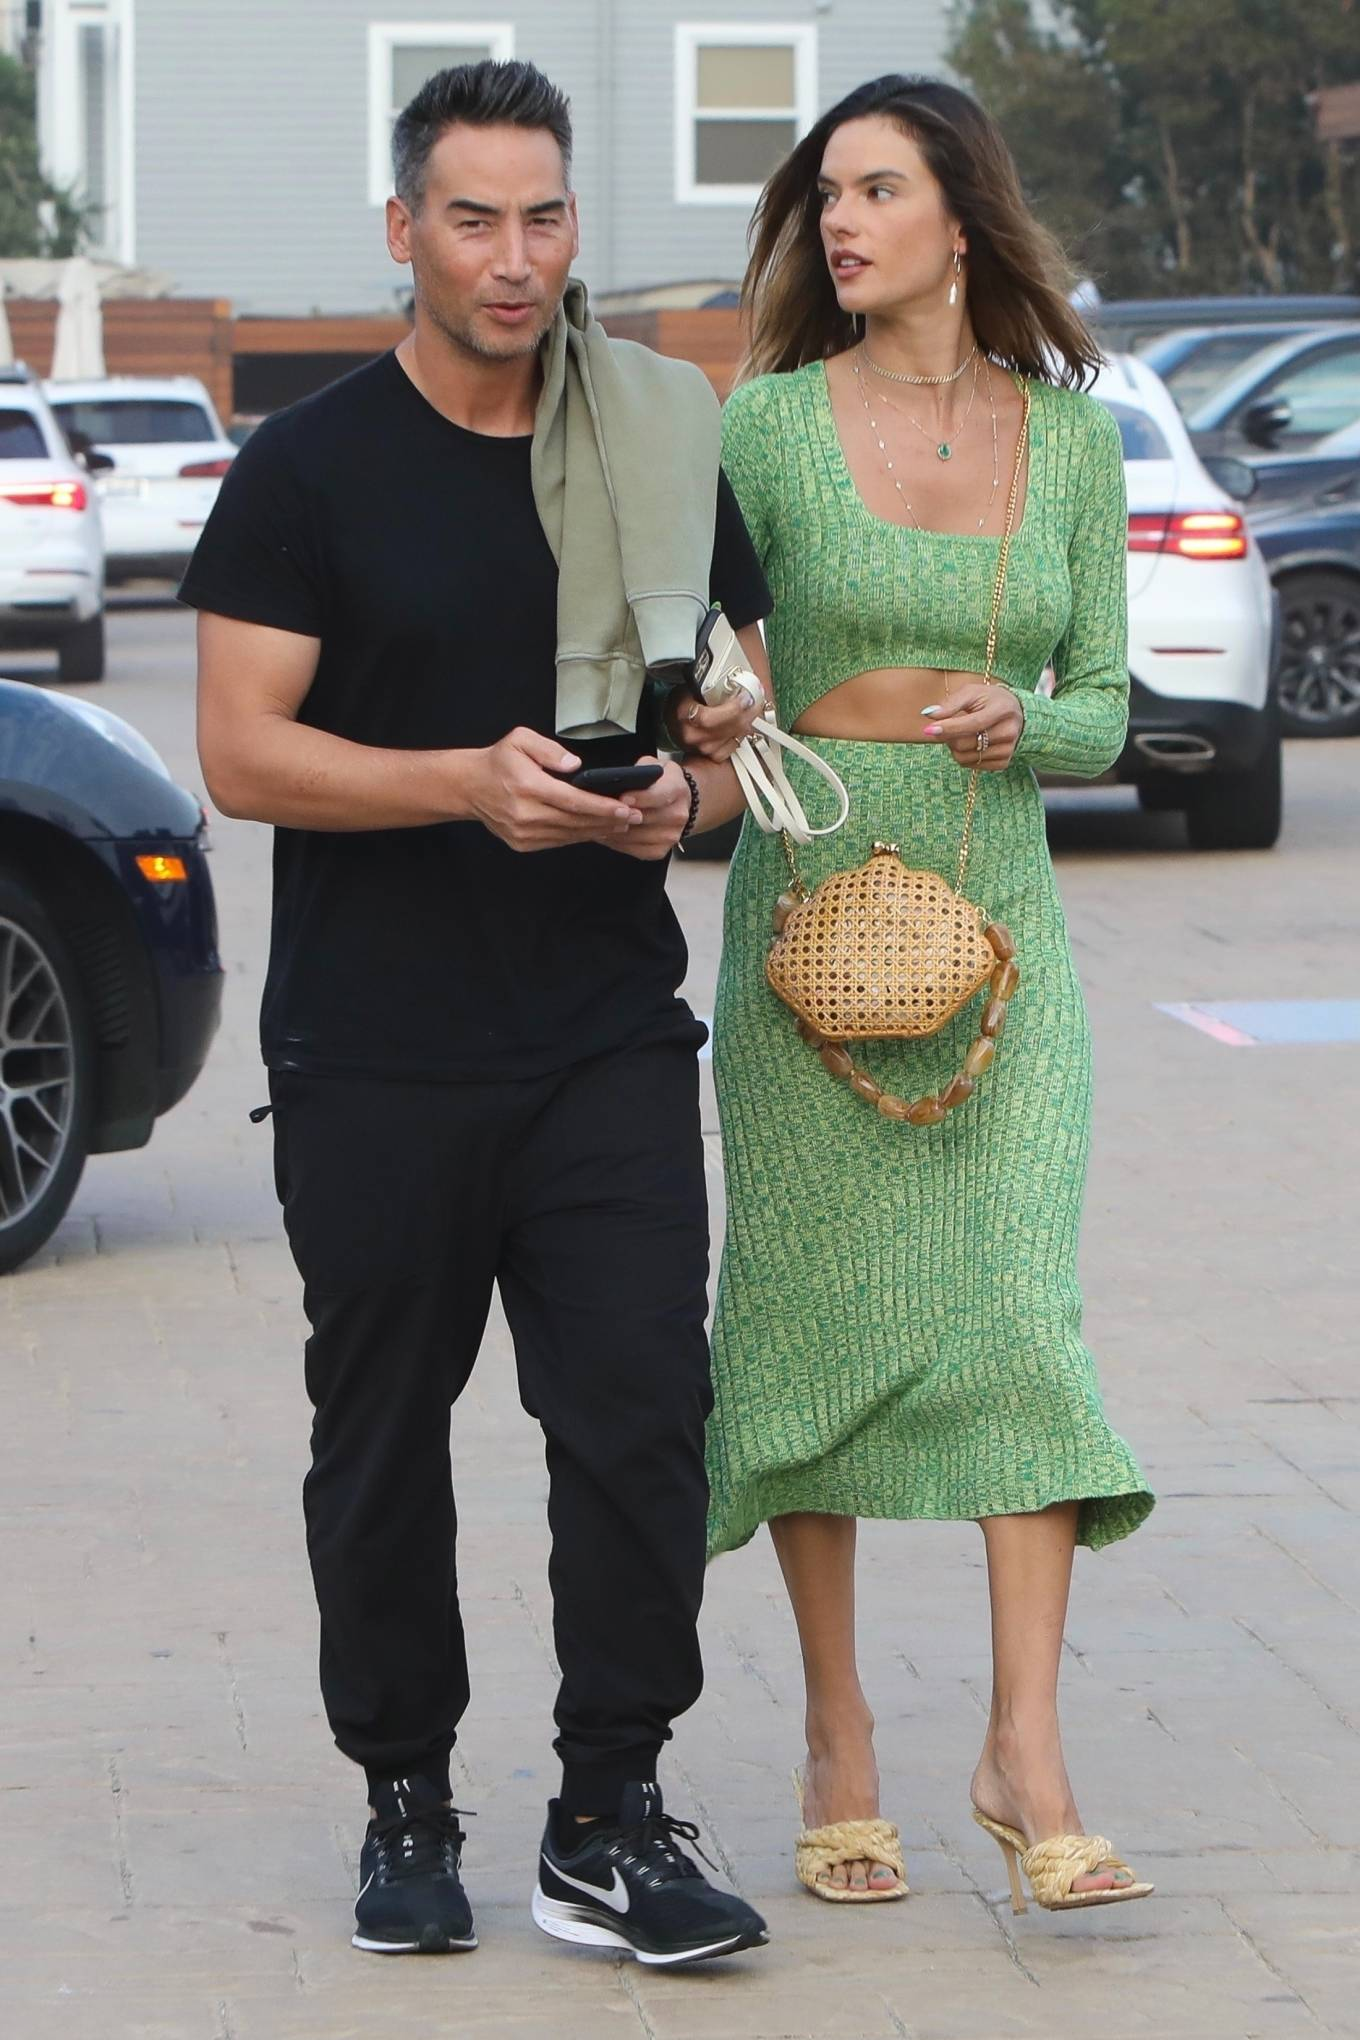 Alessandra Ambrosio rocking a figure hugging leaf green dress with a knit fabric, full sleeves, cut out and a square neck